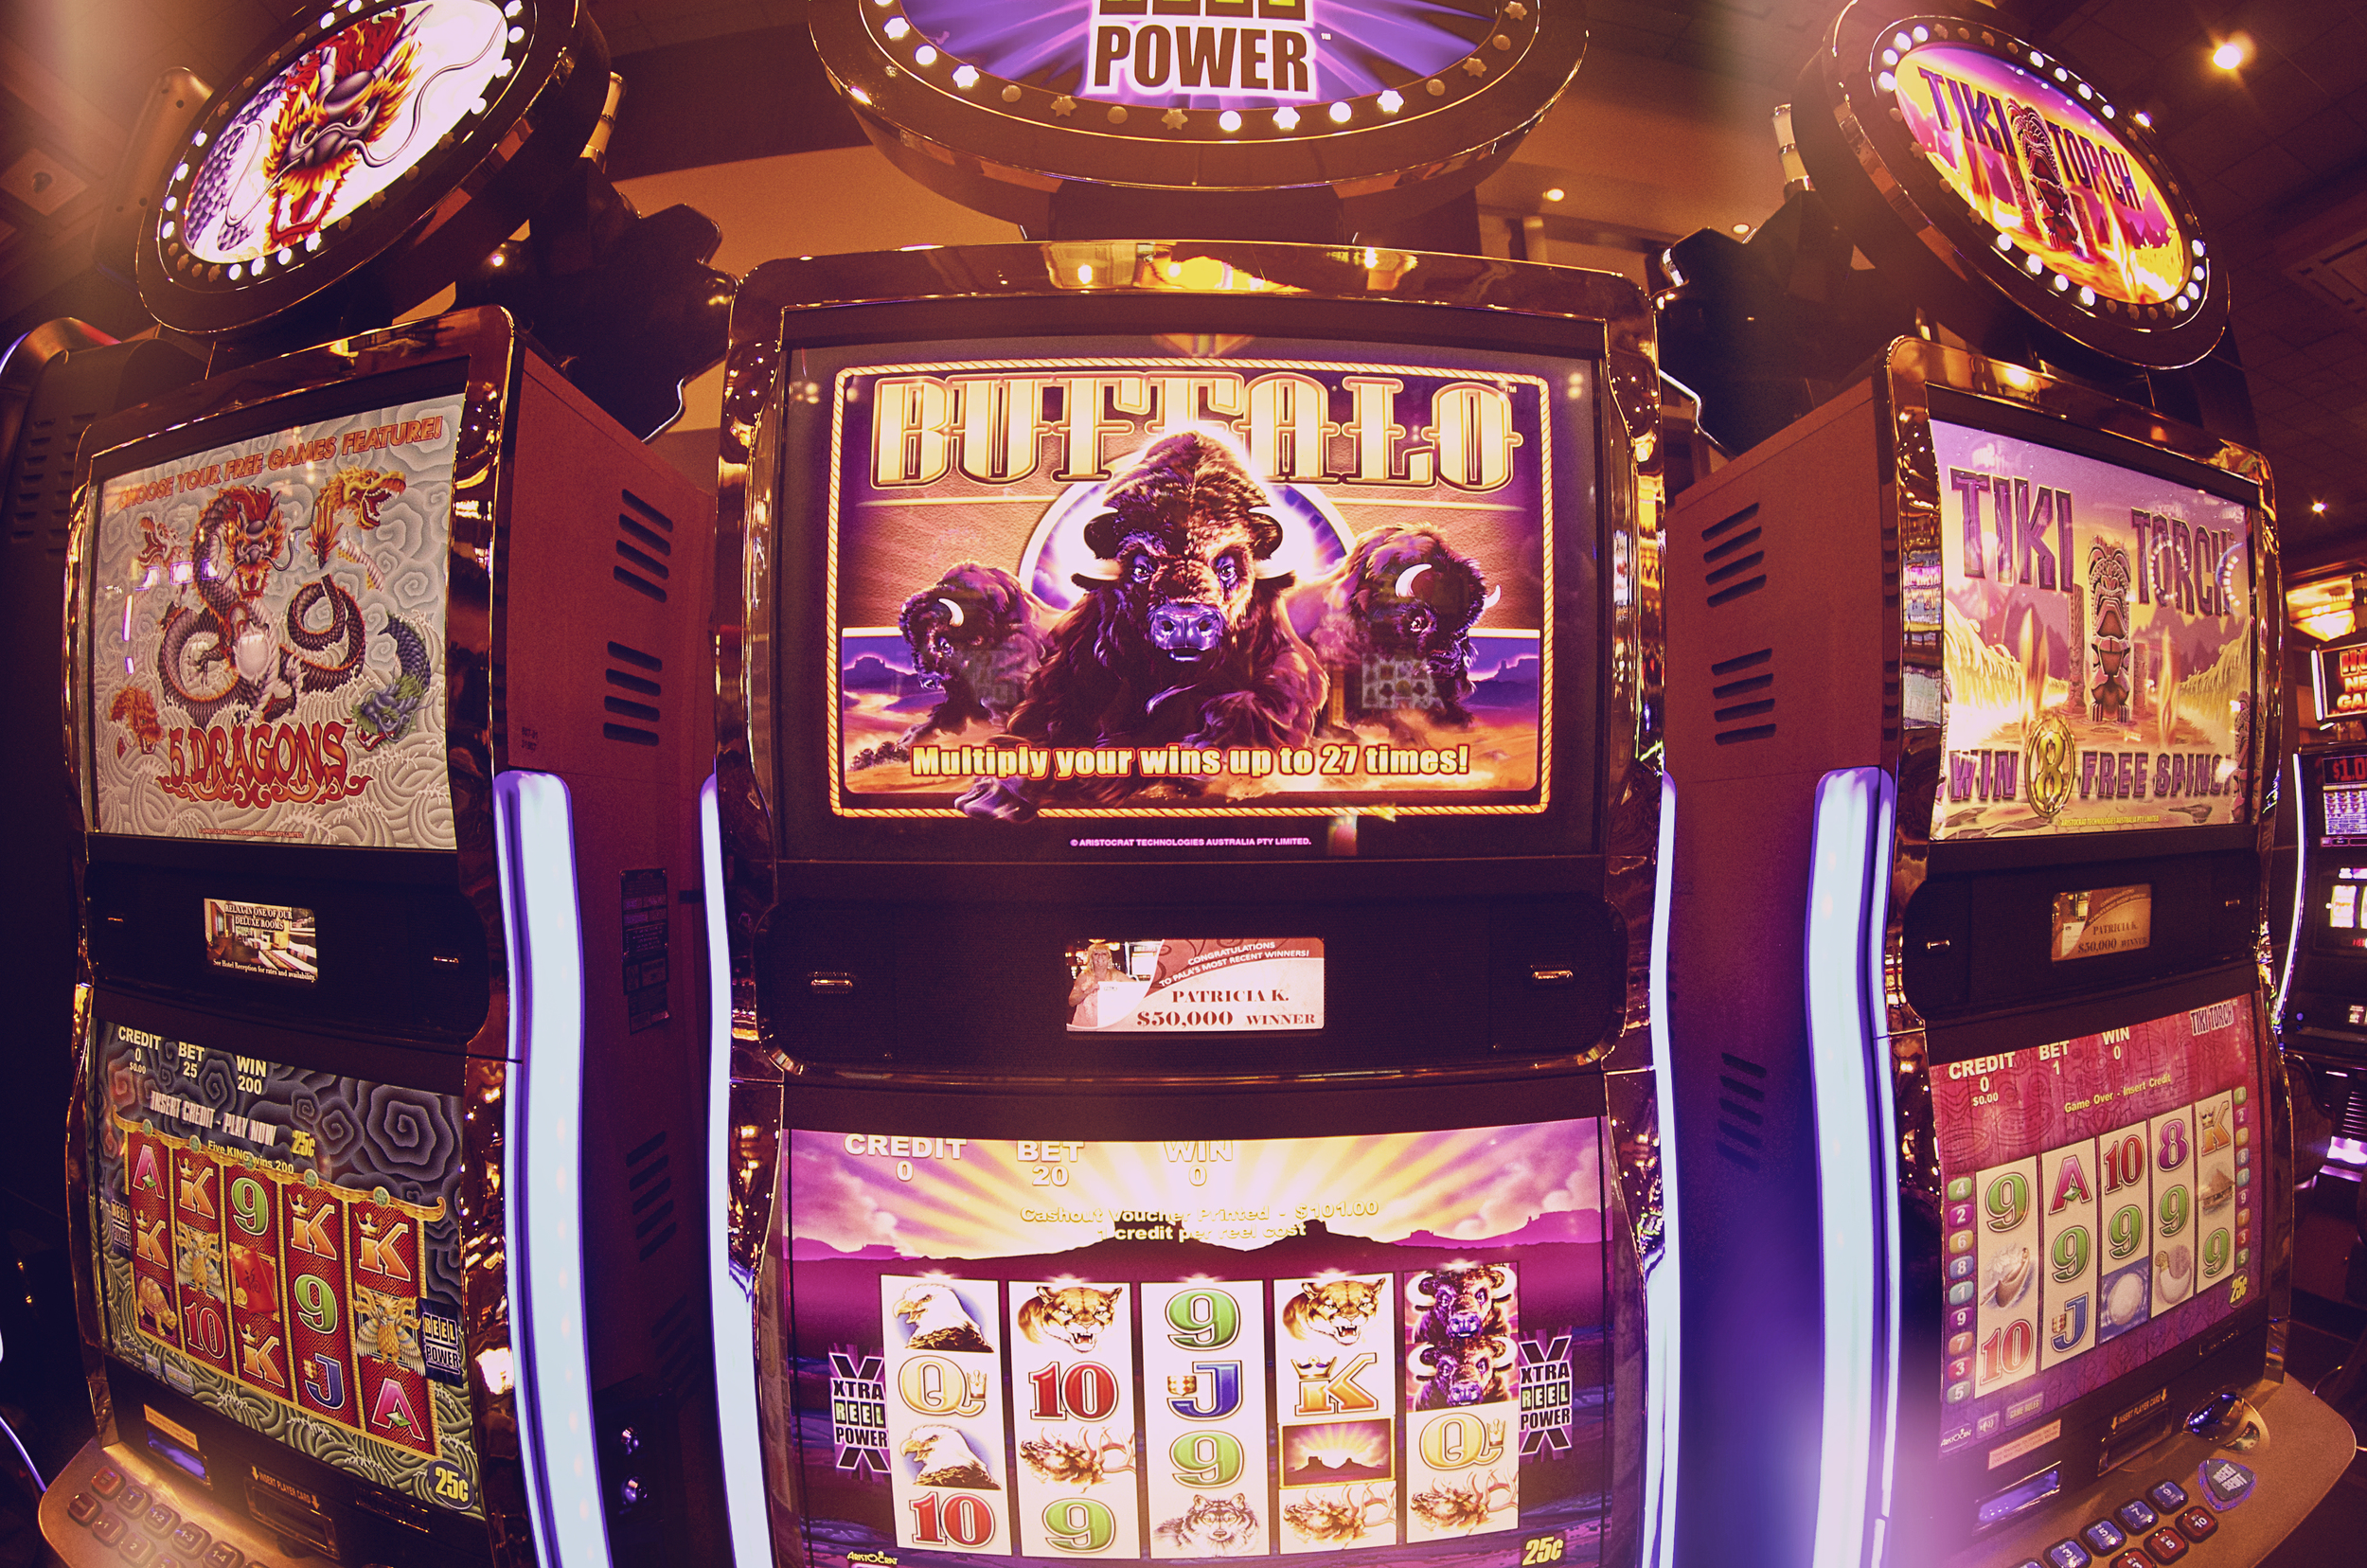 This Buffalo slot machine was calling our name.